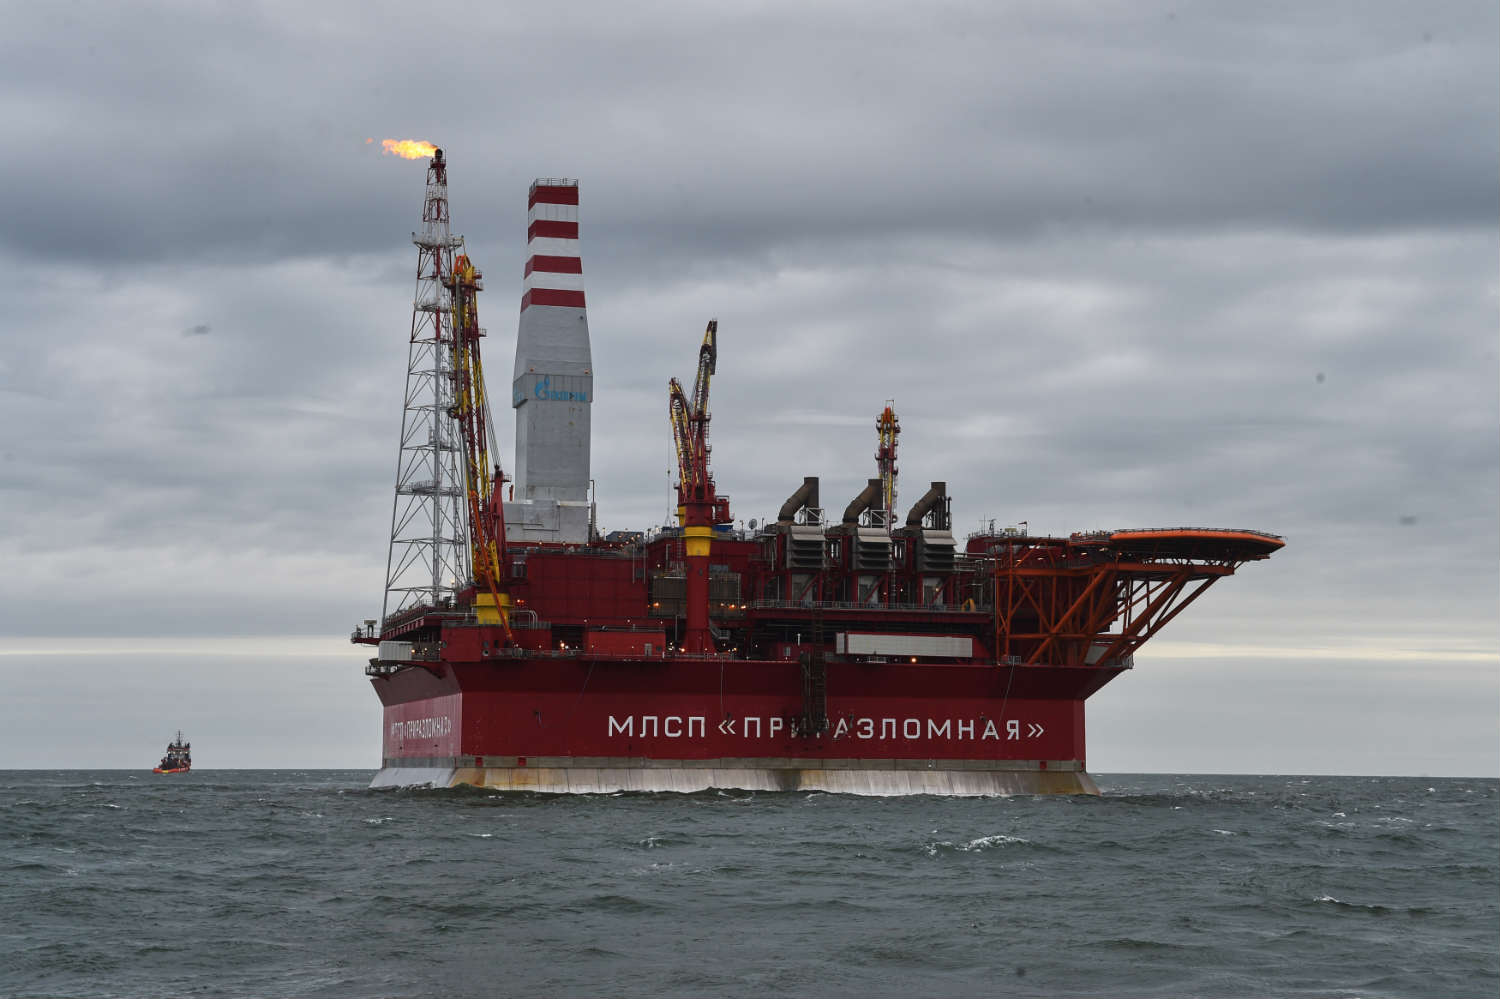 Russia will look to tap Arctic resources of oil and gas